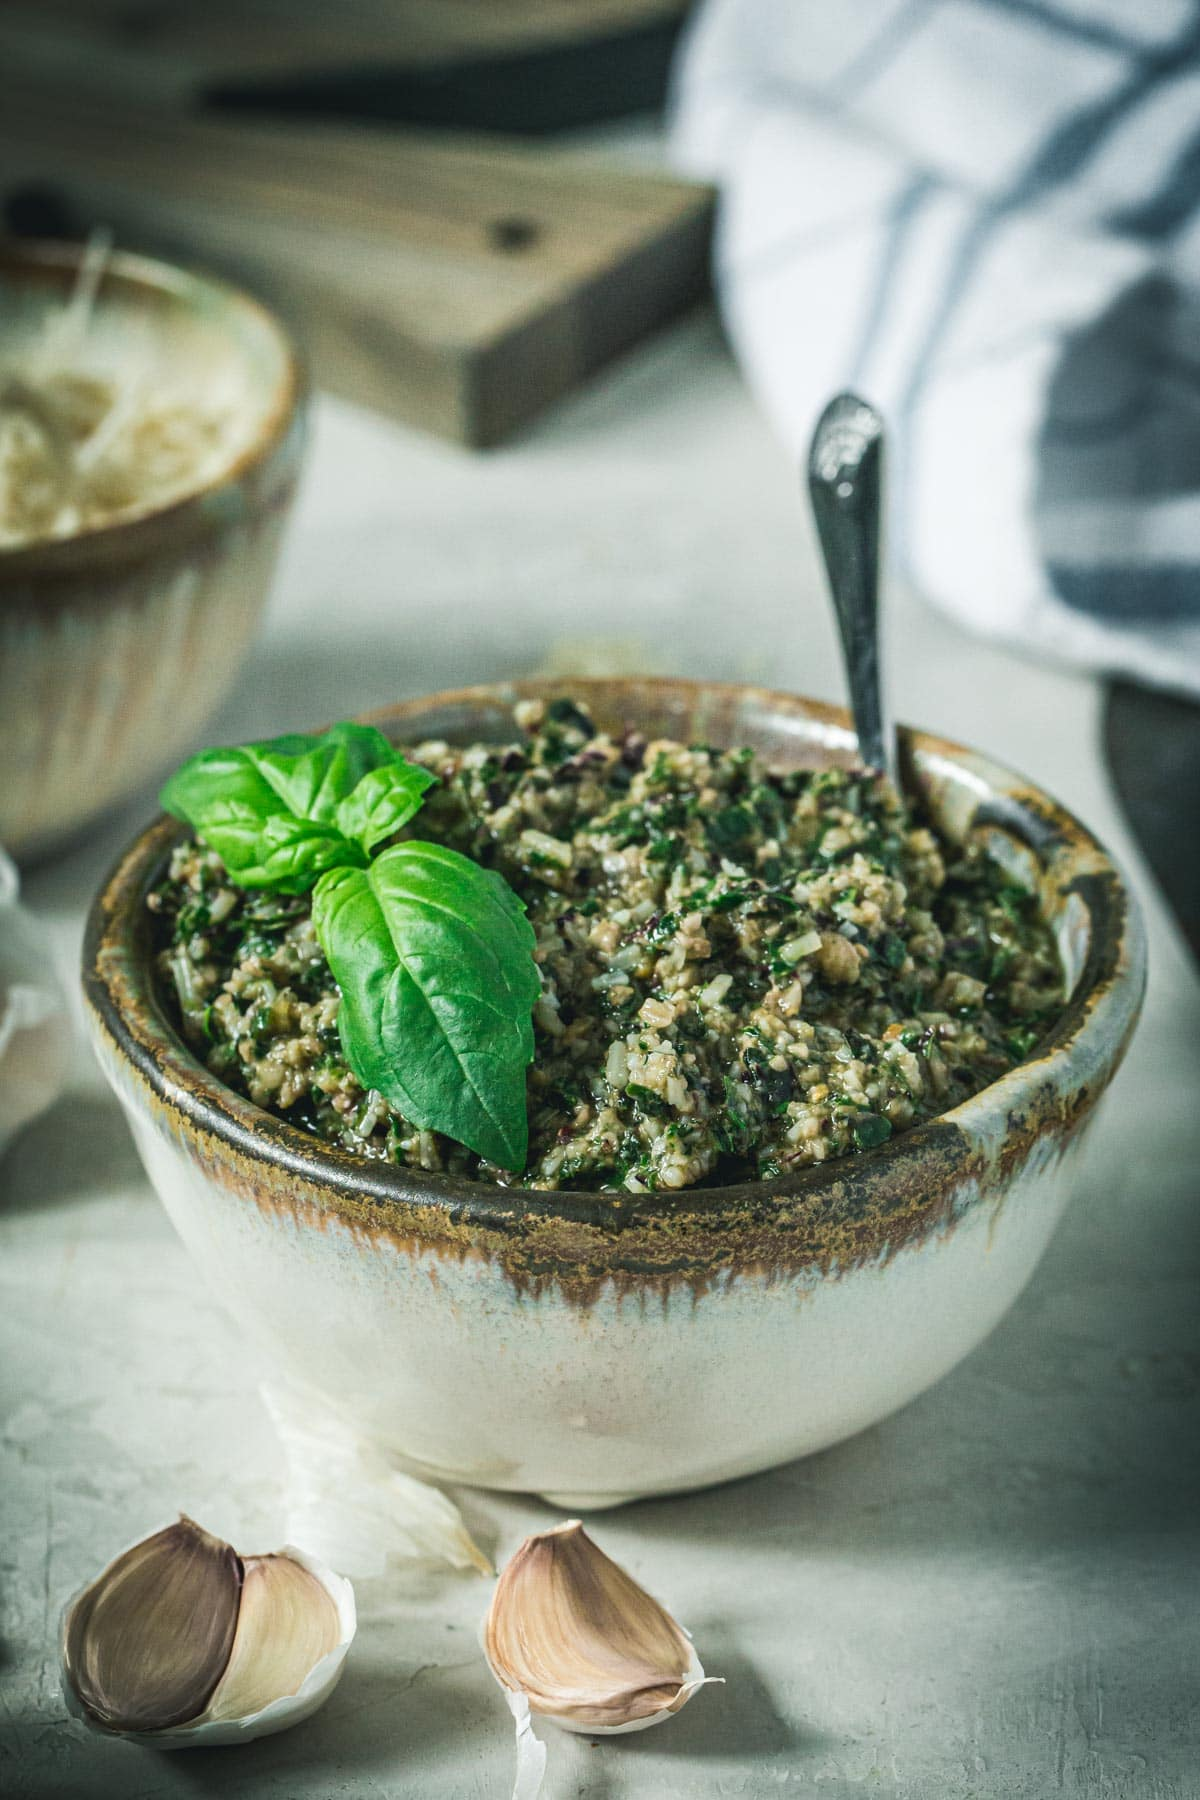 Homemade beet greens pesto topped with basil in a pottery bowl.